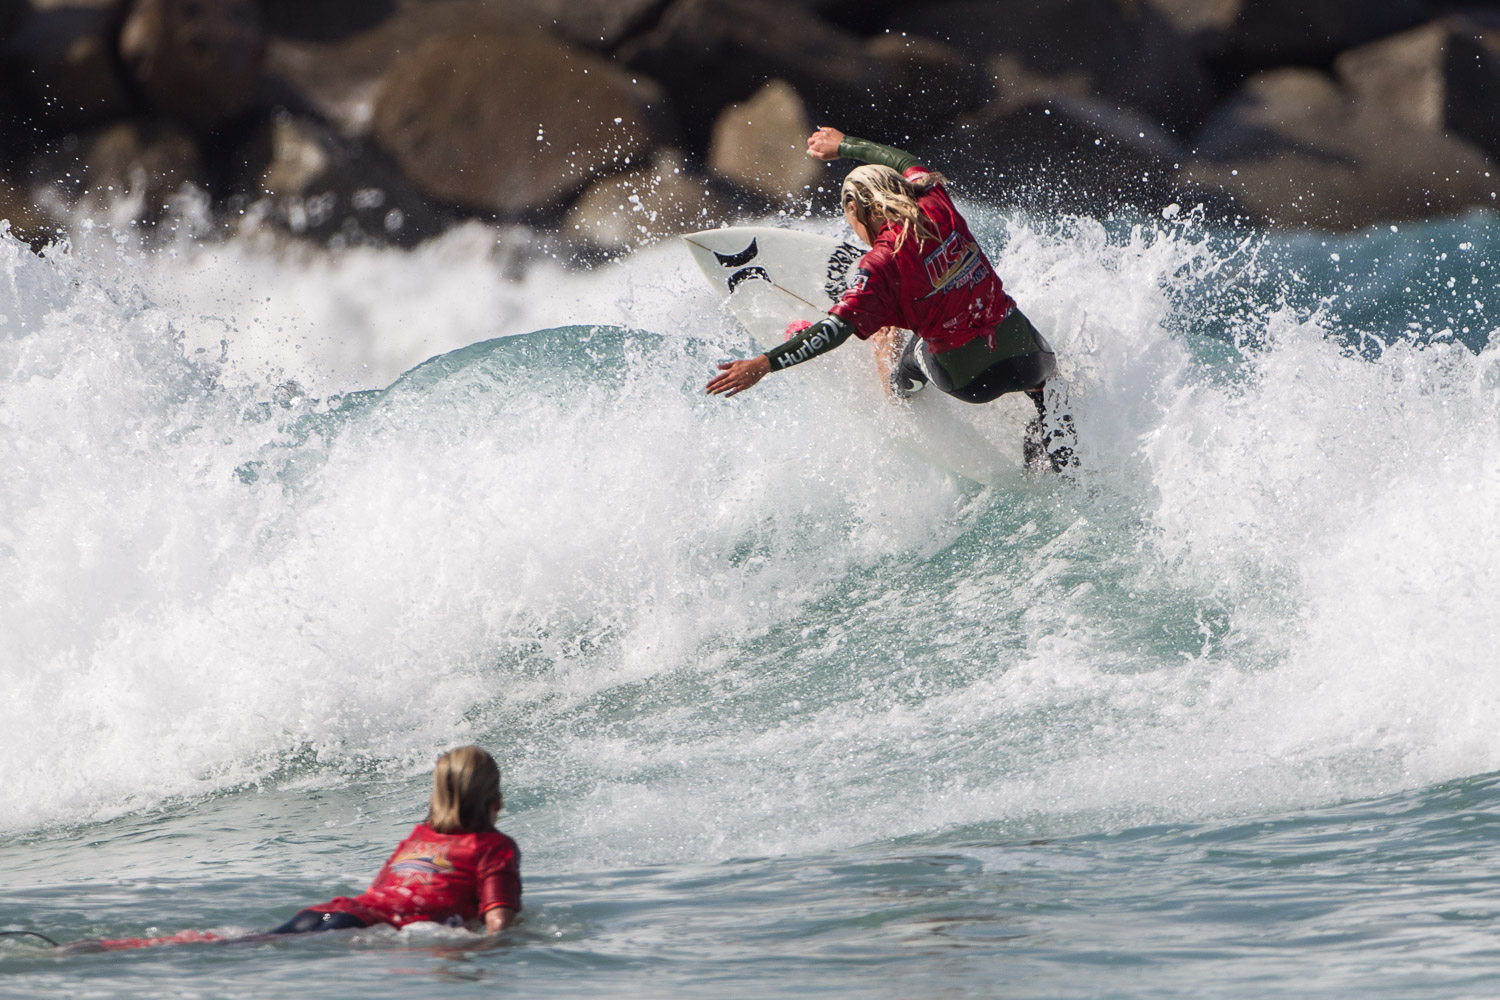 Kirra Pinkerton of San Clemente took top honors in Girls U16 at the Surfing America Prime season kick-off, Aug. 9-10 at Camp Pendleton, DMJs. Photo: Jack McDaniel